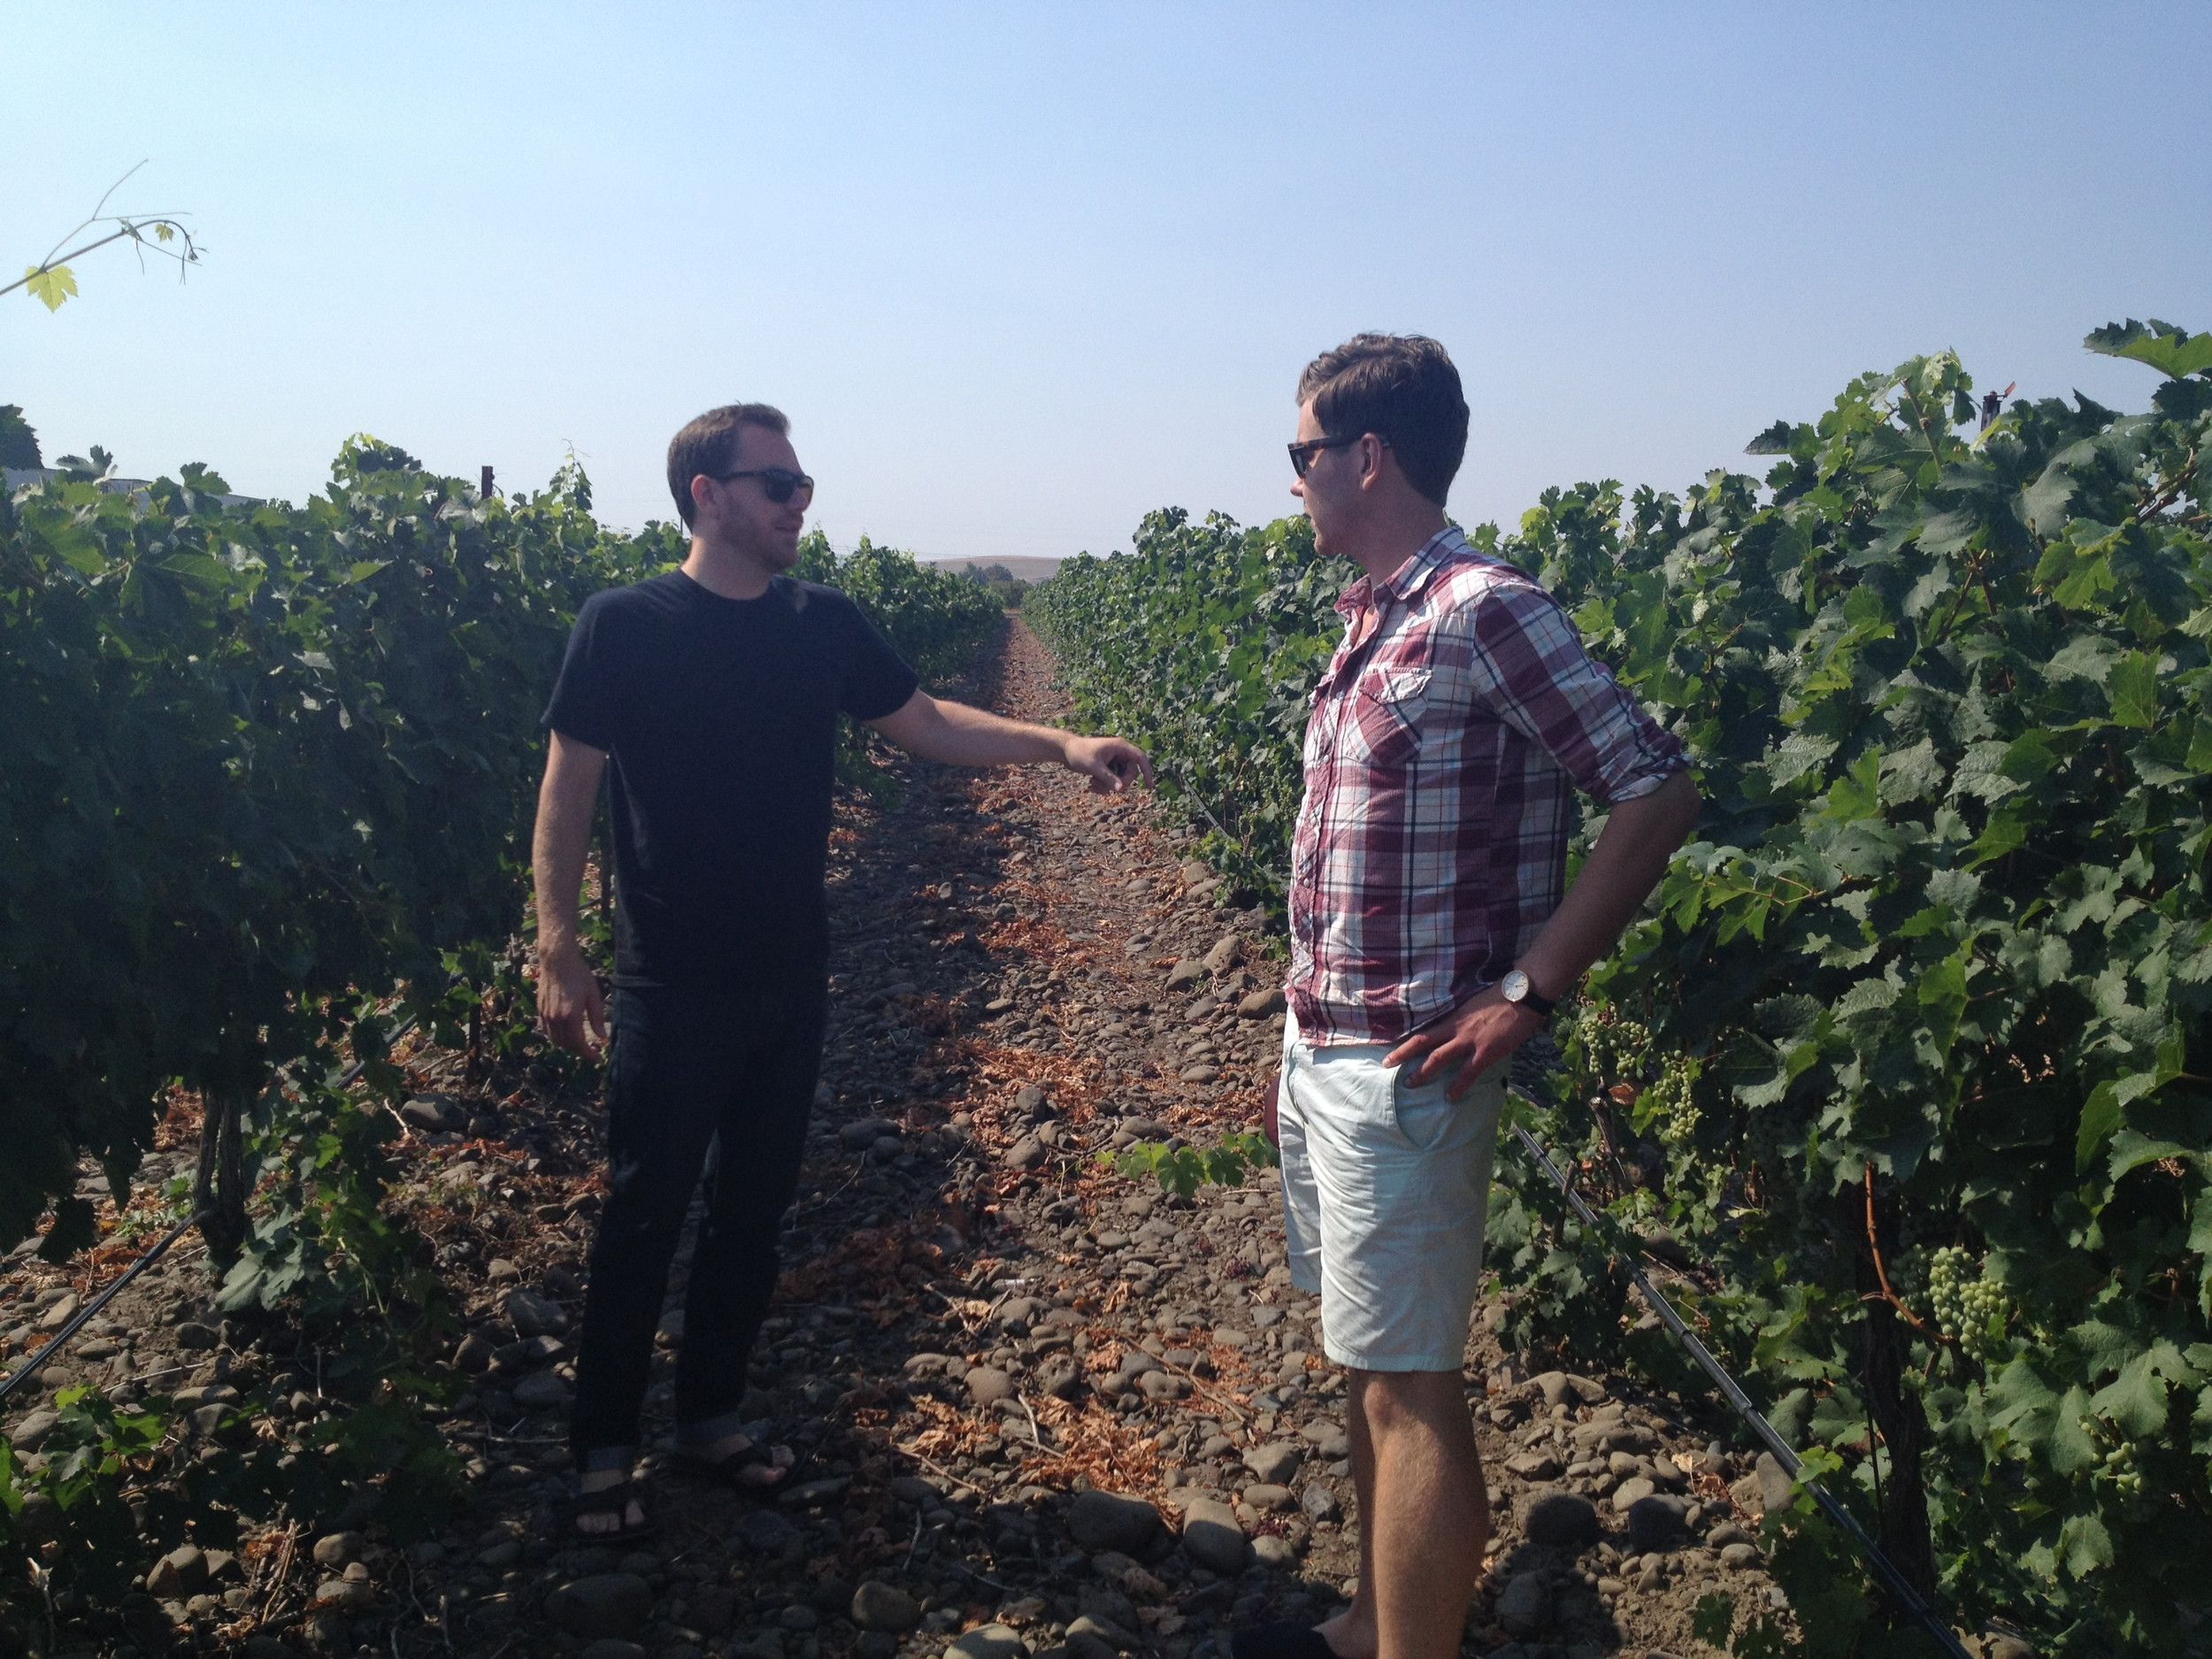 Checking out the rocks vineyard Syrah with Andrew Latta.